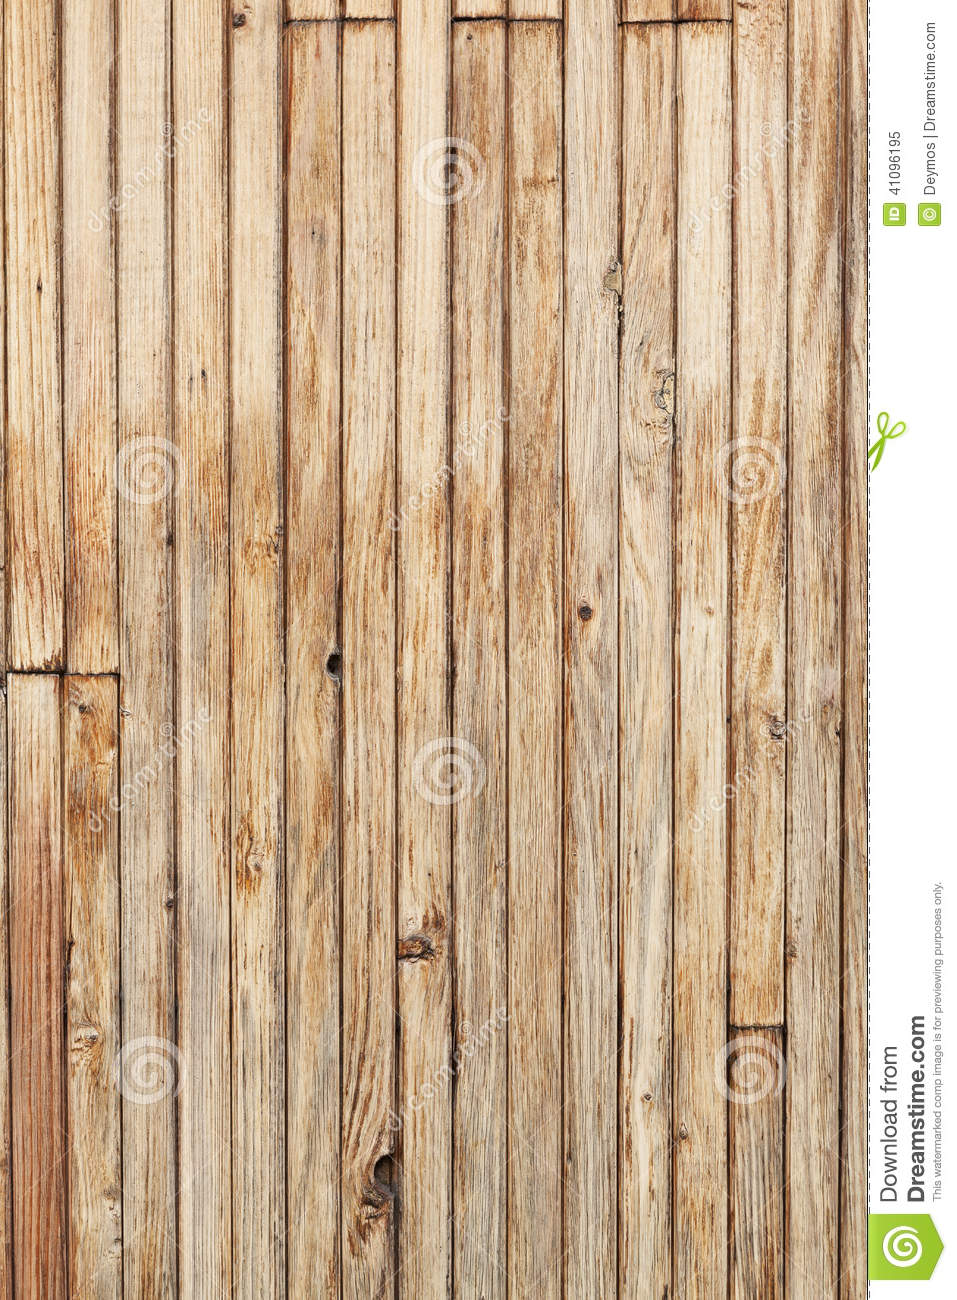 Wood Wall Surface Wooden Texture Vertical Boards Stock